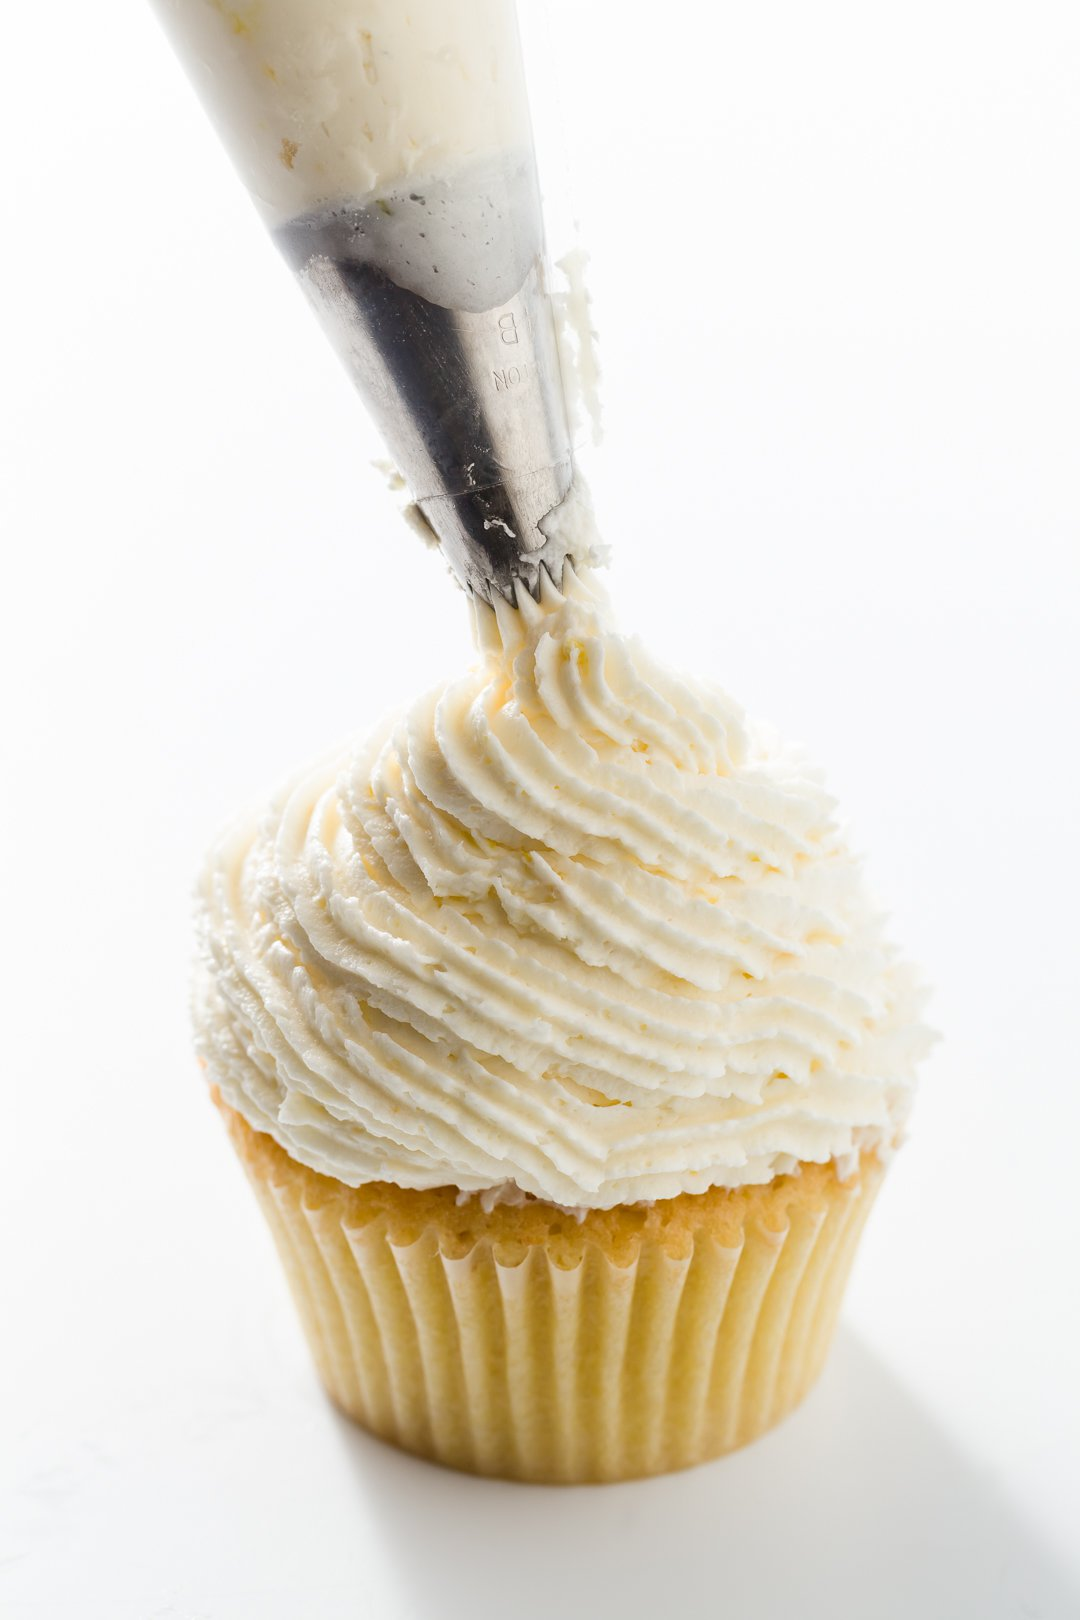 Piping lemon buttercream frosting